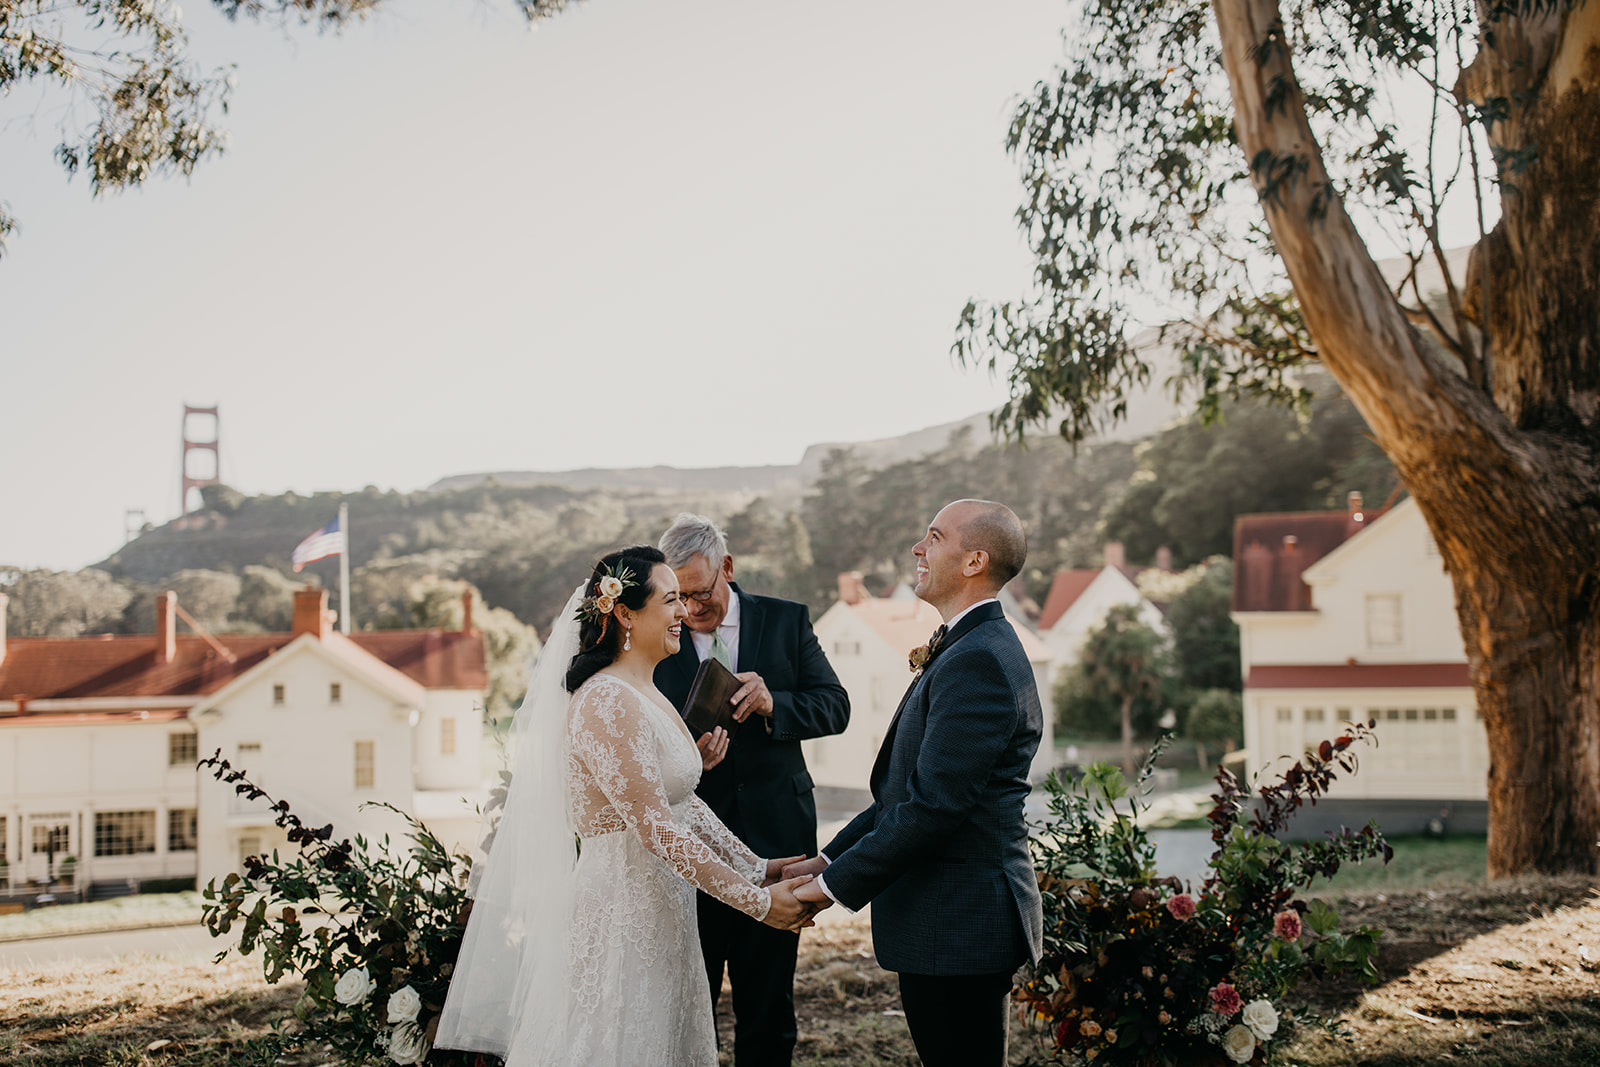 Intimate Dinner Party Wedding at Cavallo Point